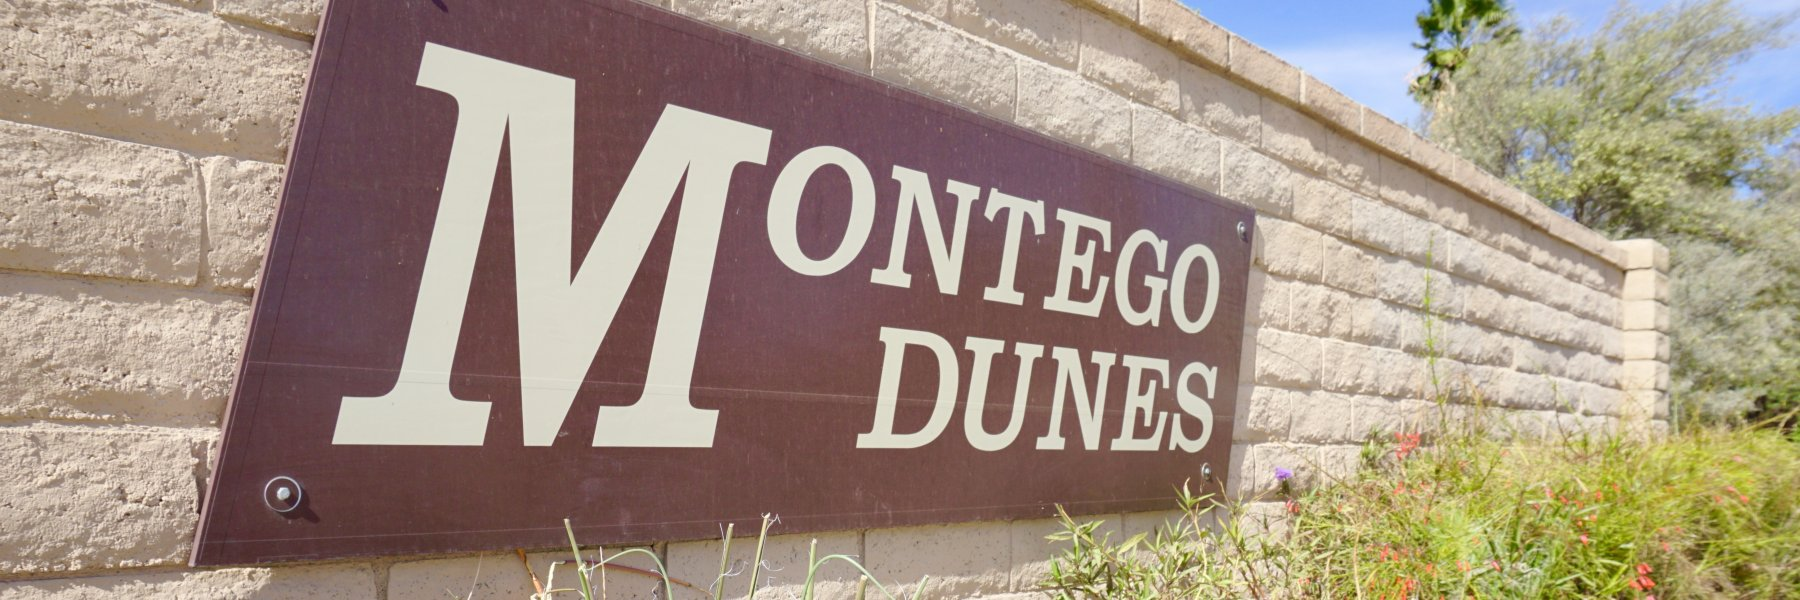 Montego Dunes is a community of homes in Indio California